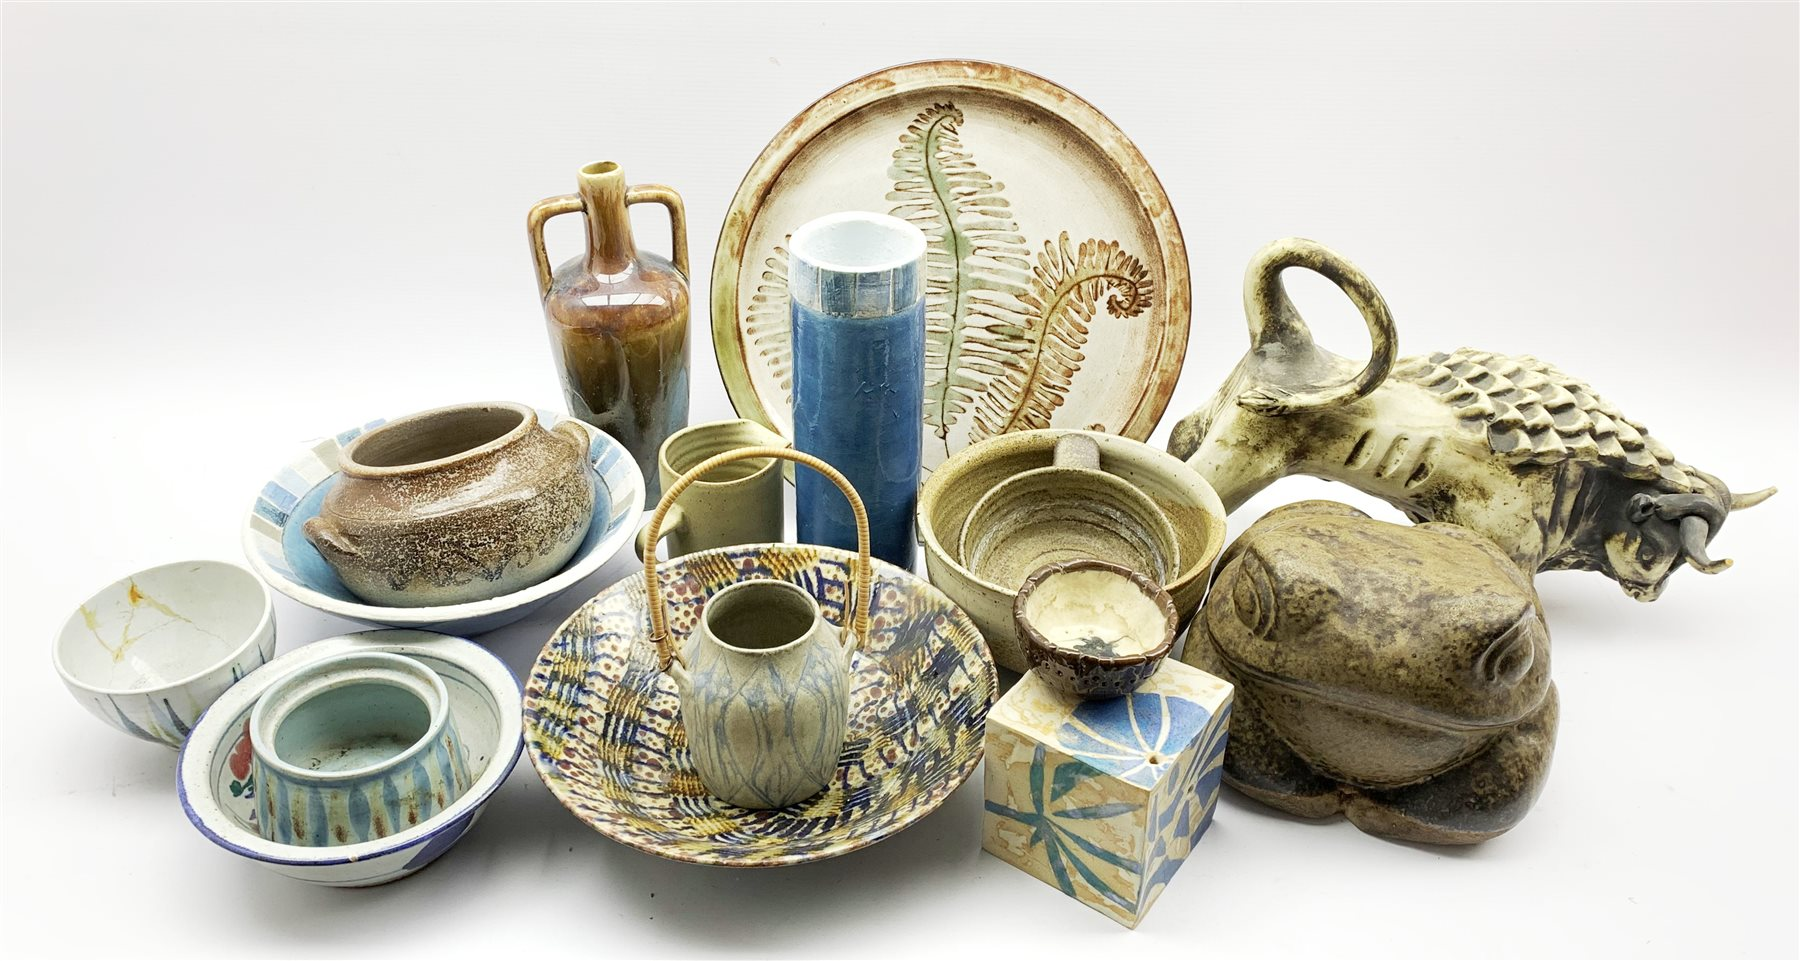 Collection of studio pottery to include a Danish stoneware basket with cane handle, a glazed bowl wi